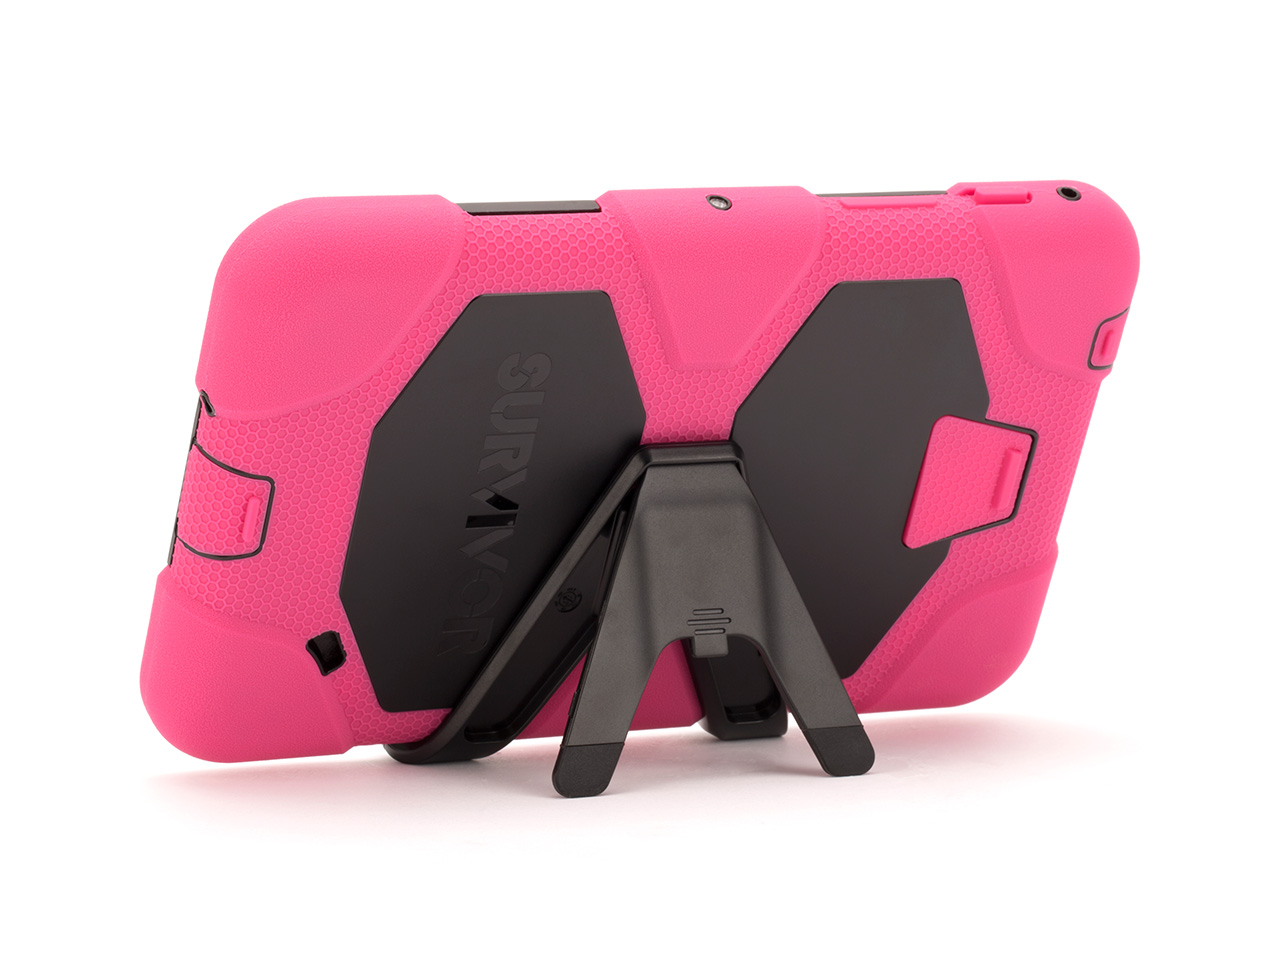 Pink/Black Survivor All-Terrain Case + Stand for Samsung Galaxy Tab 4 7.0